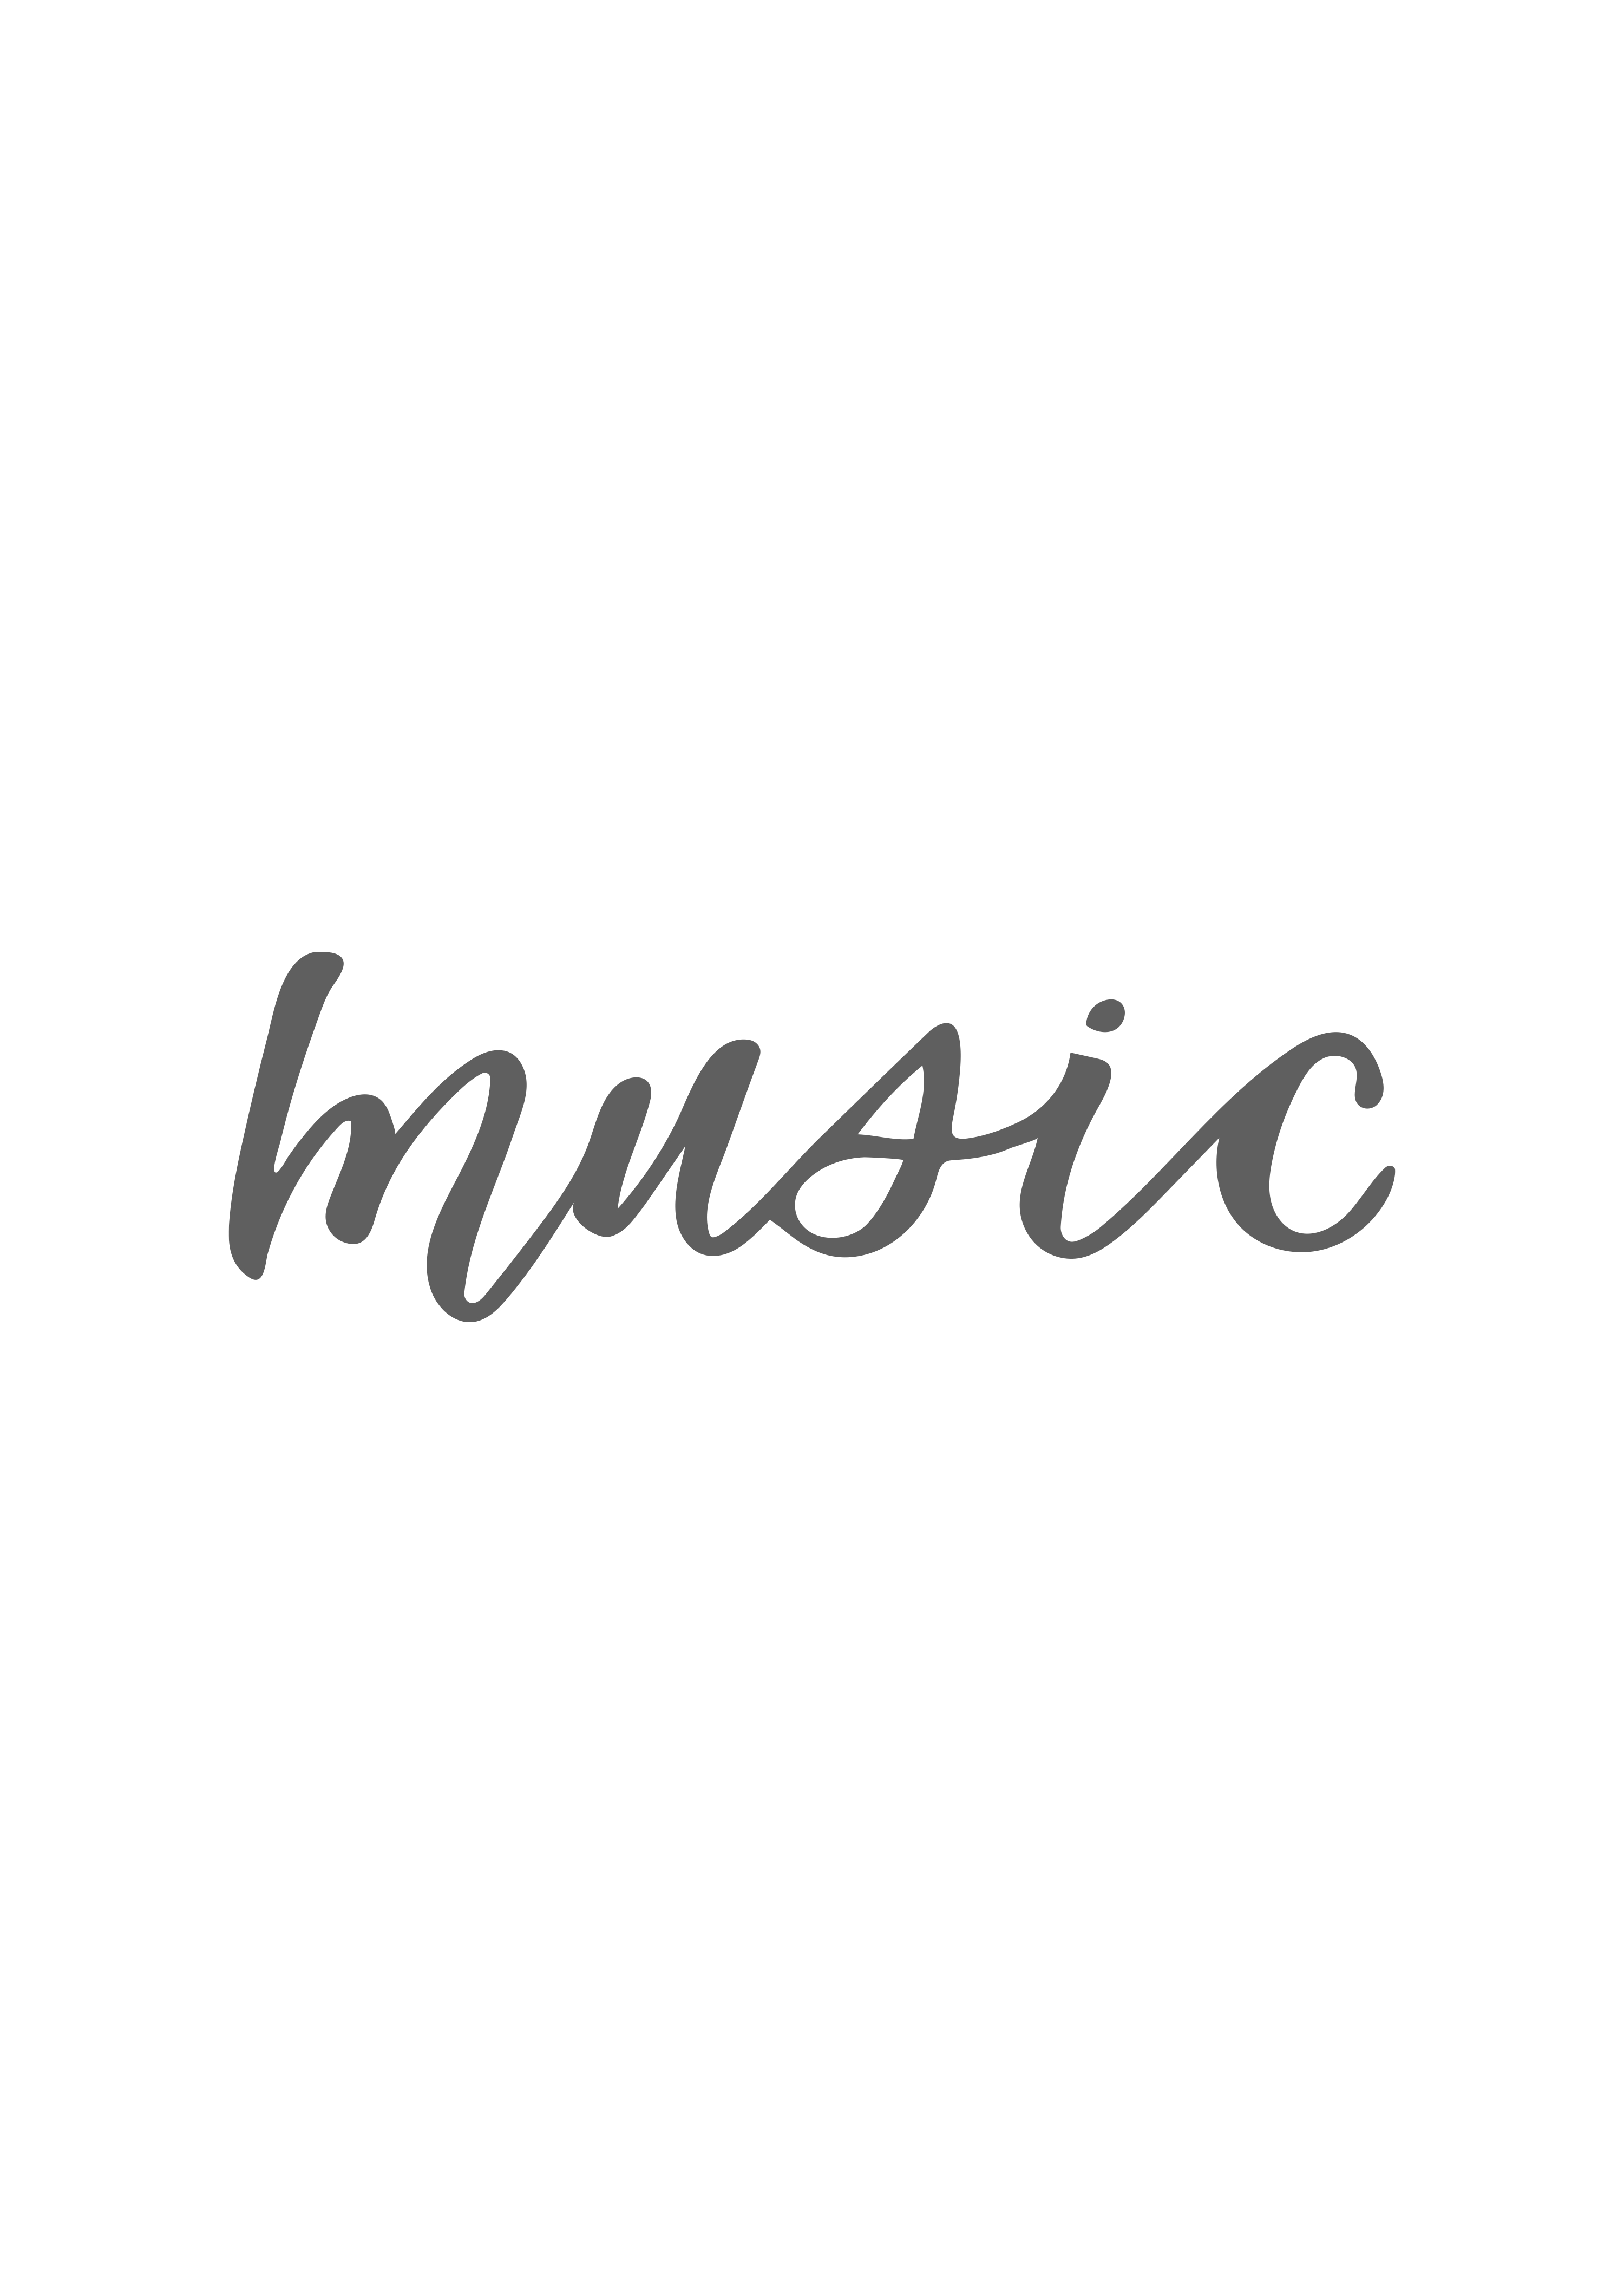 """music"" calligraphy"